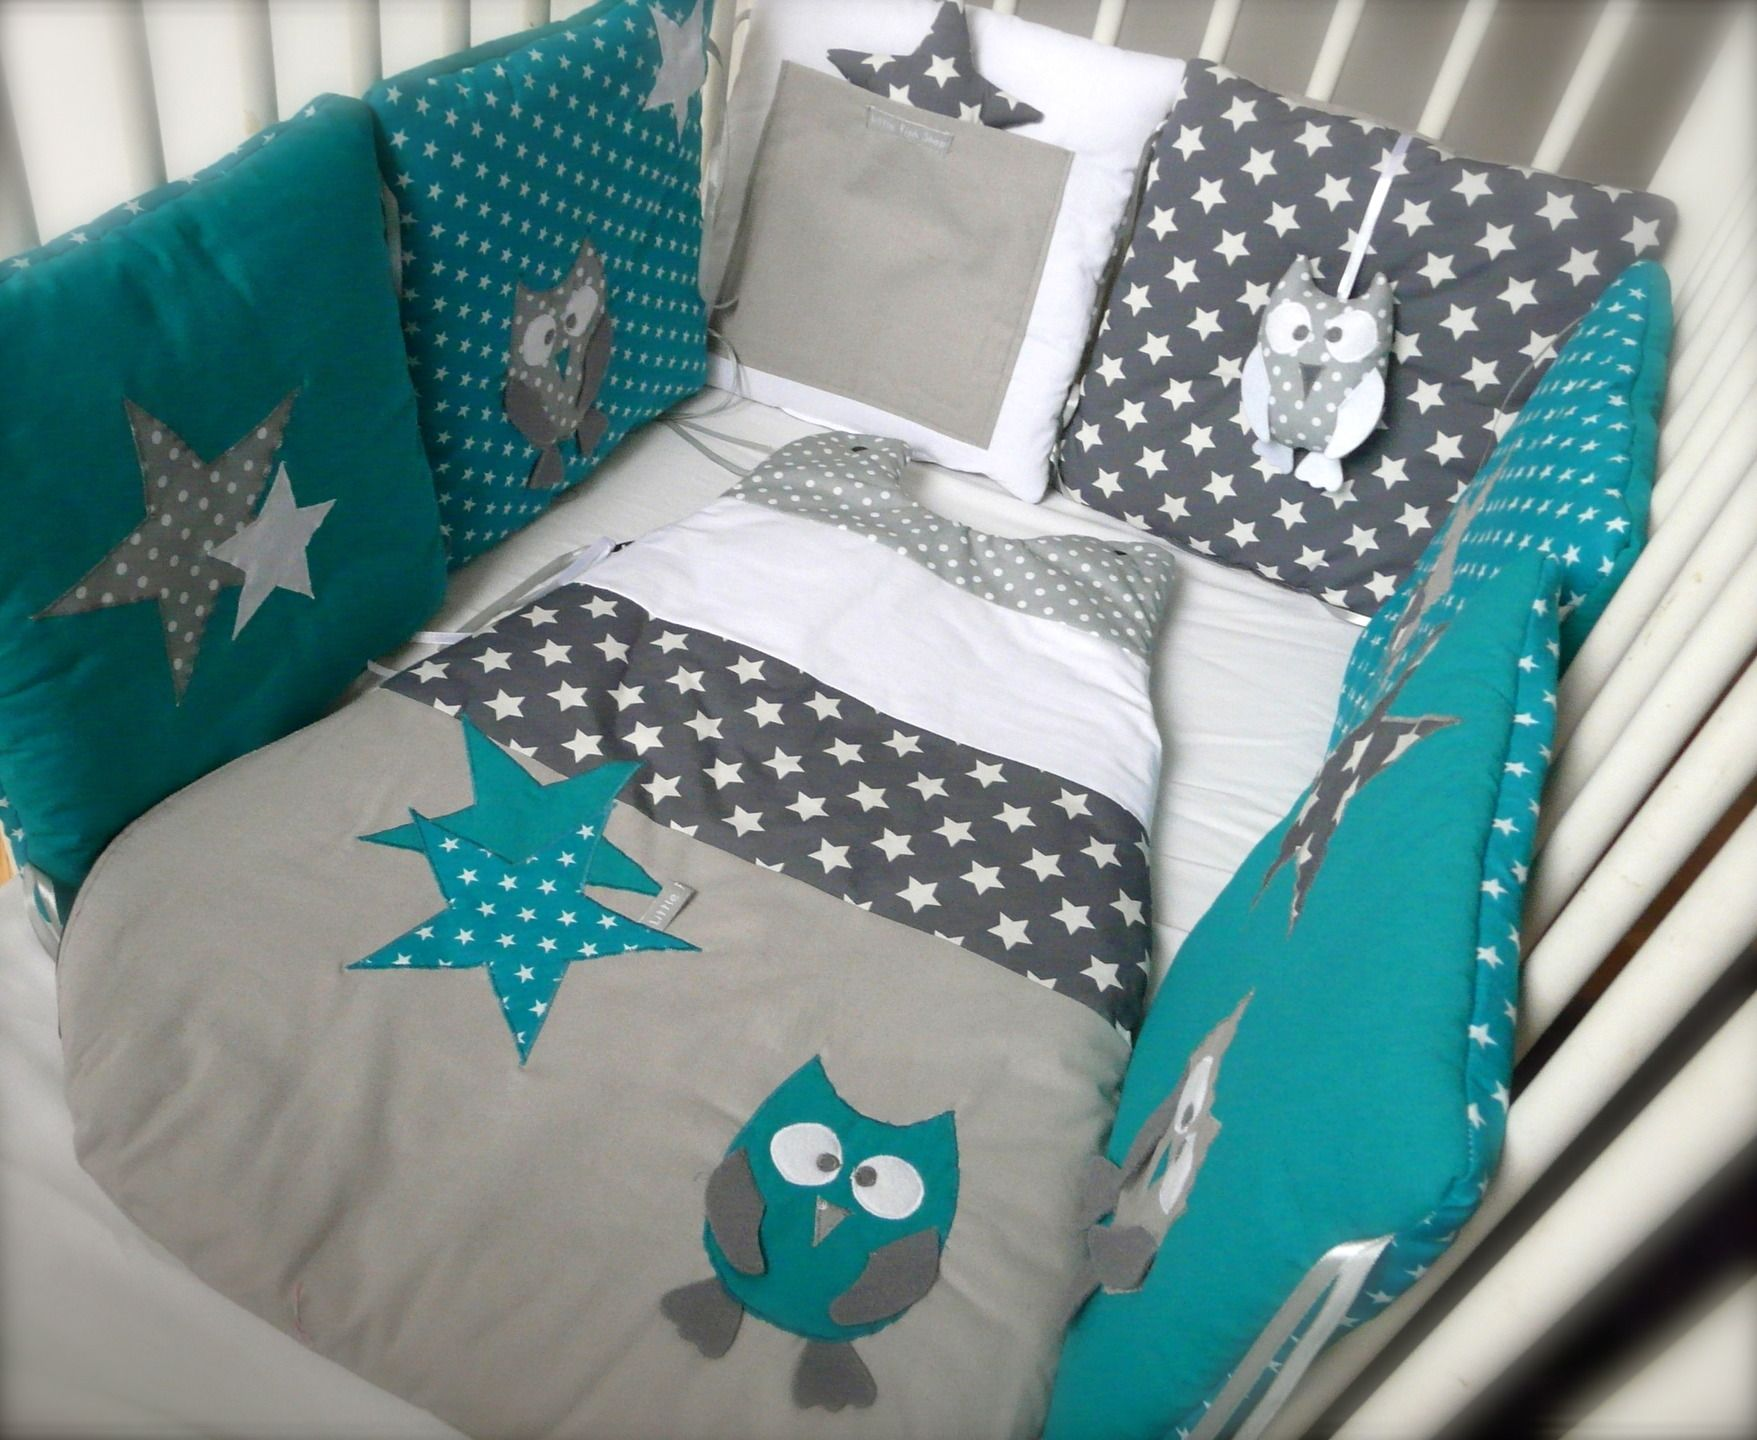 tour de lit chouettes et toiles bleu canard et gris lits chouettes tour de lit et bleu canard. Black Bedroom Furniture Sets. Home Design Ideas